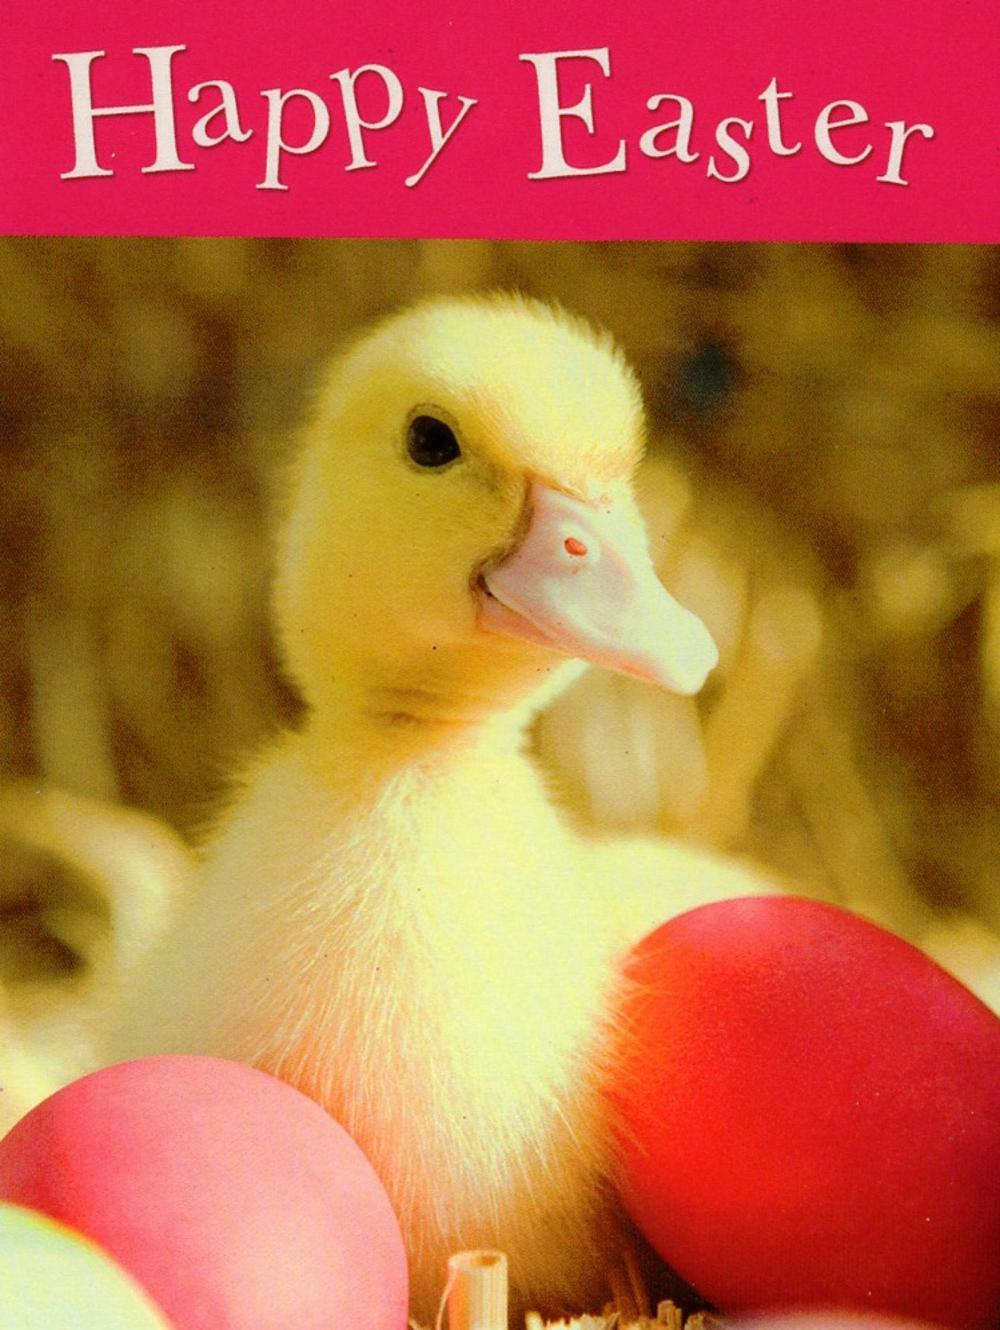 Happy Easter Cute Duckling Small Greeting Card